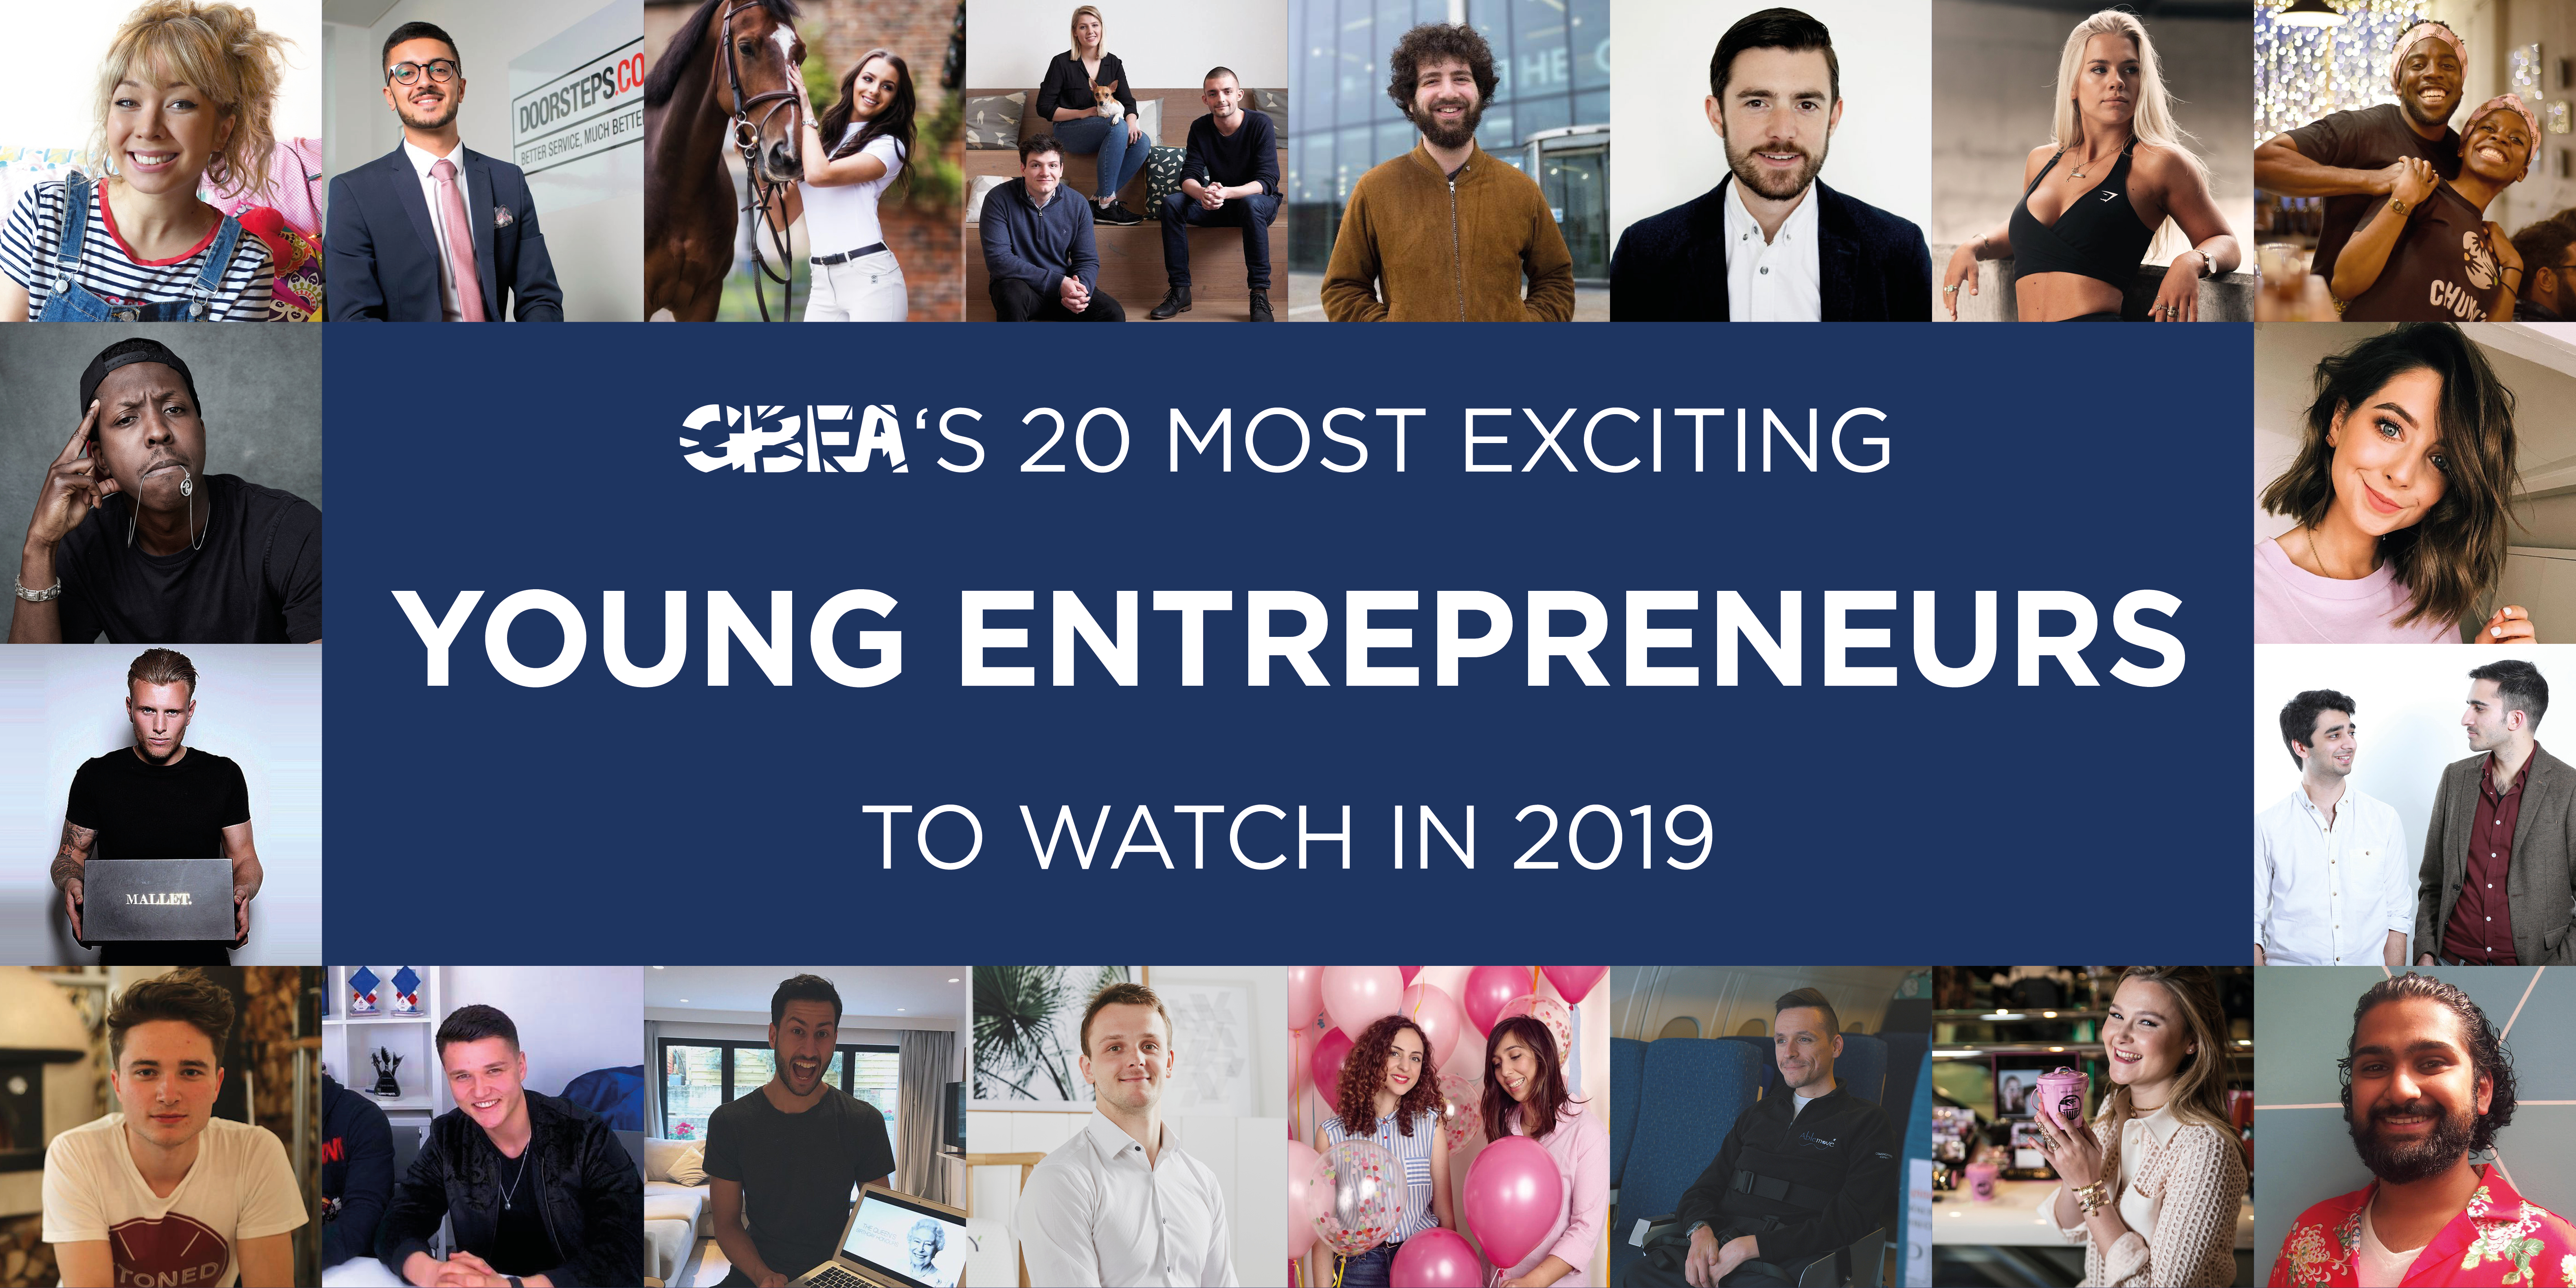 GBEA's 20 most exciting young entrepreneurs to watch in 2019